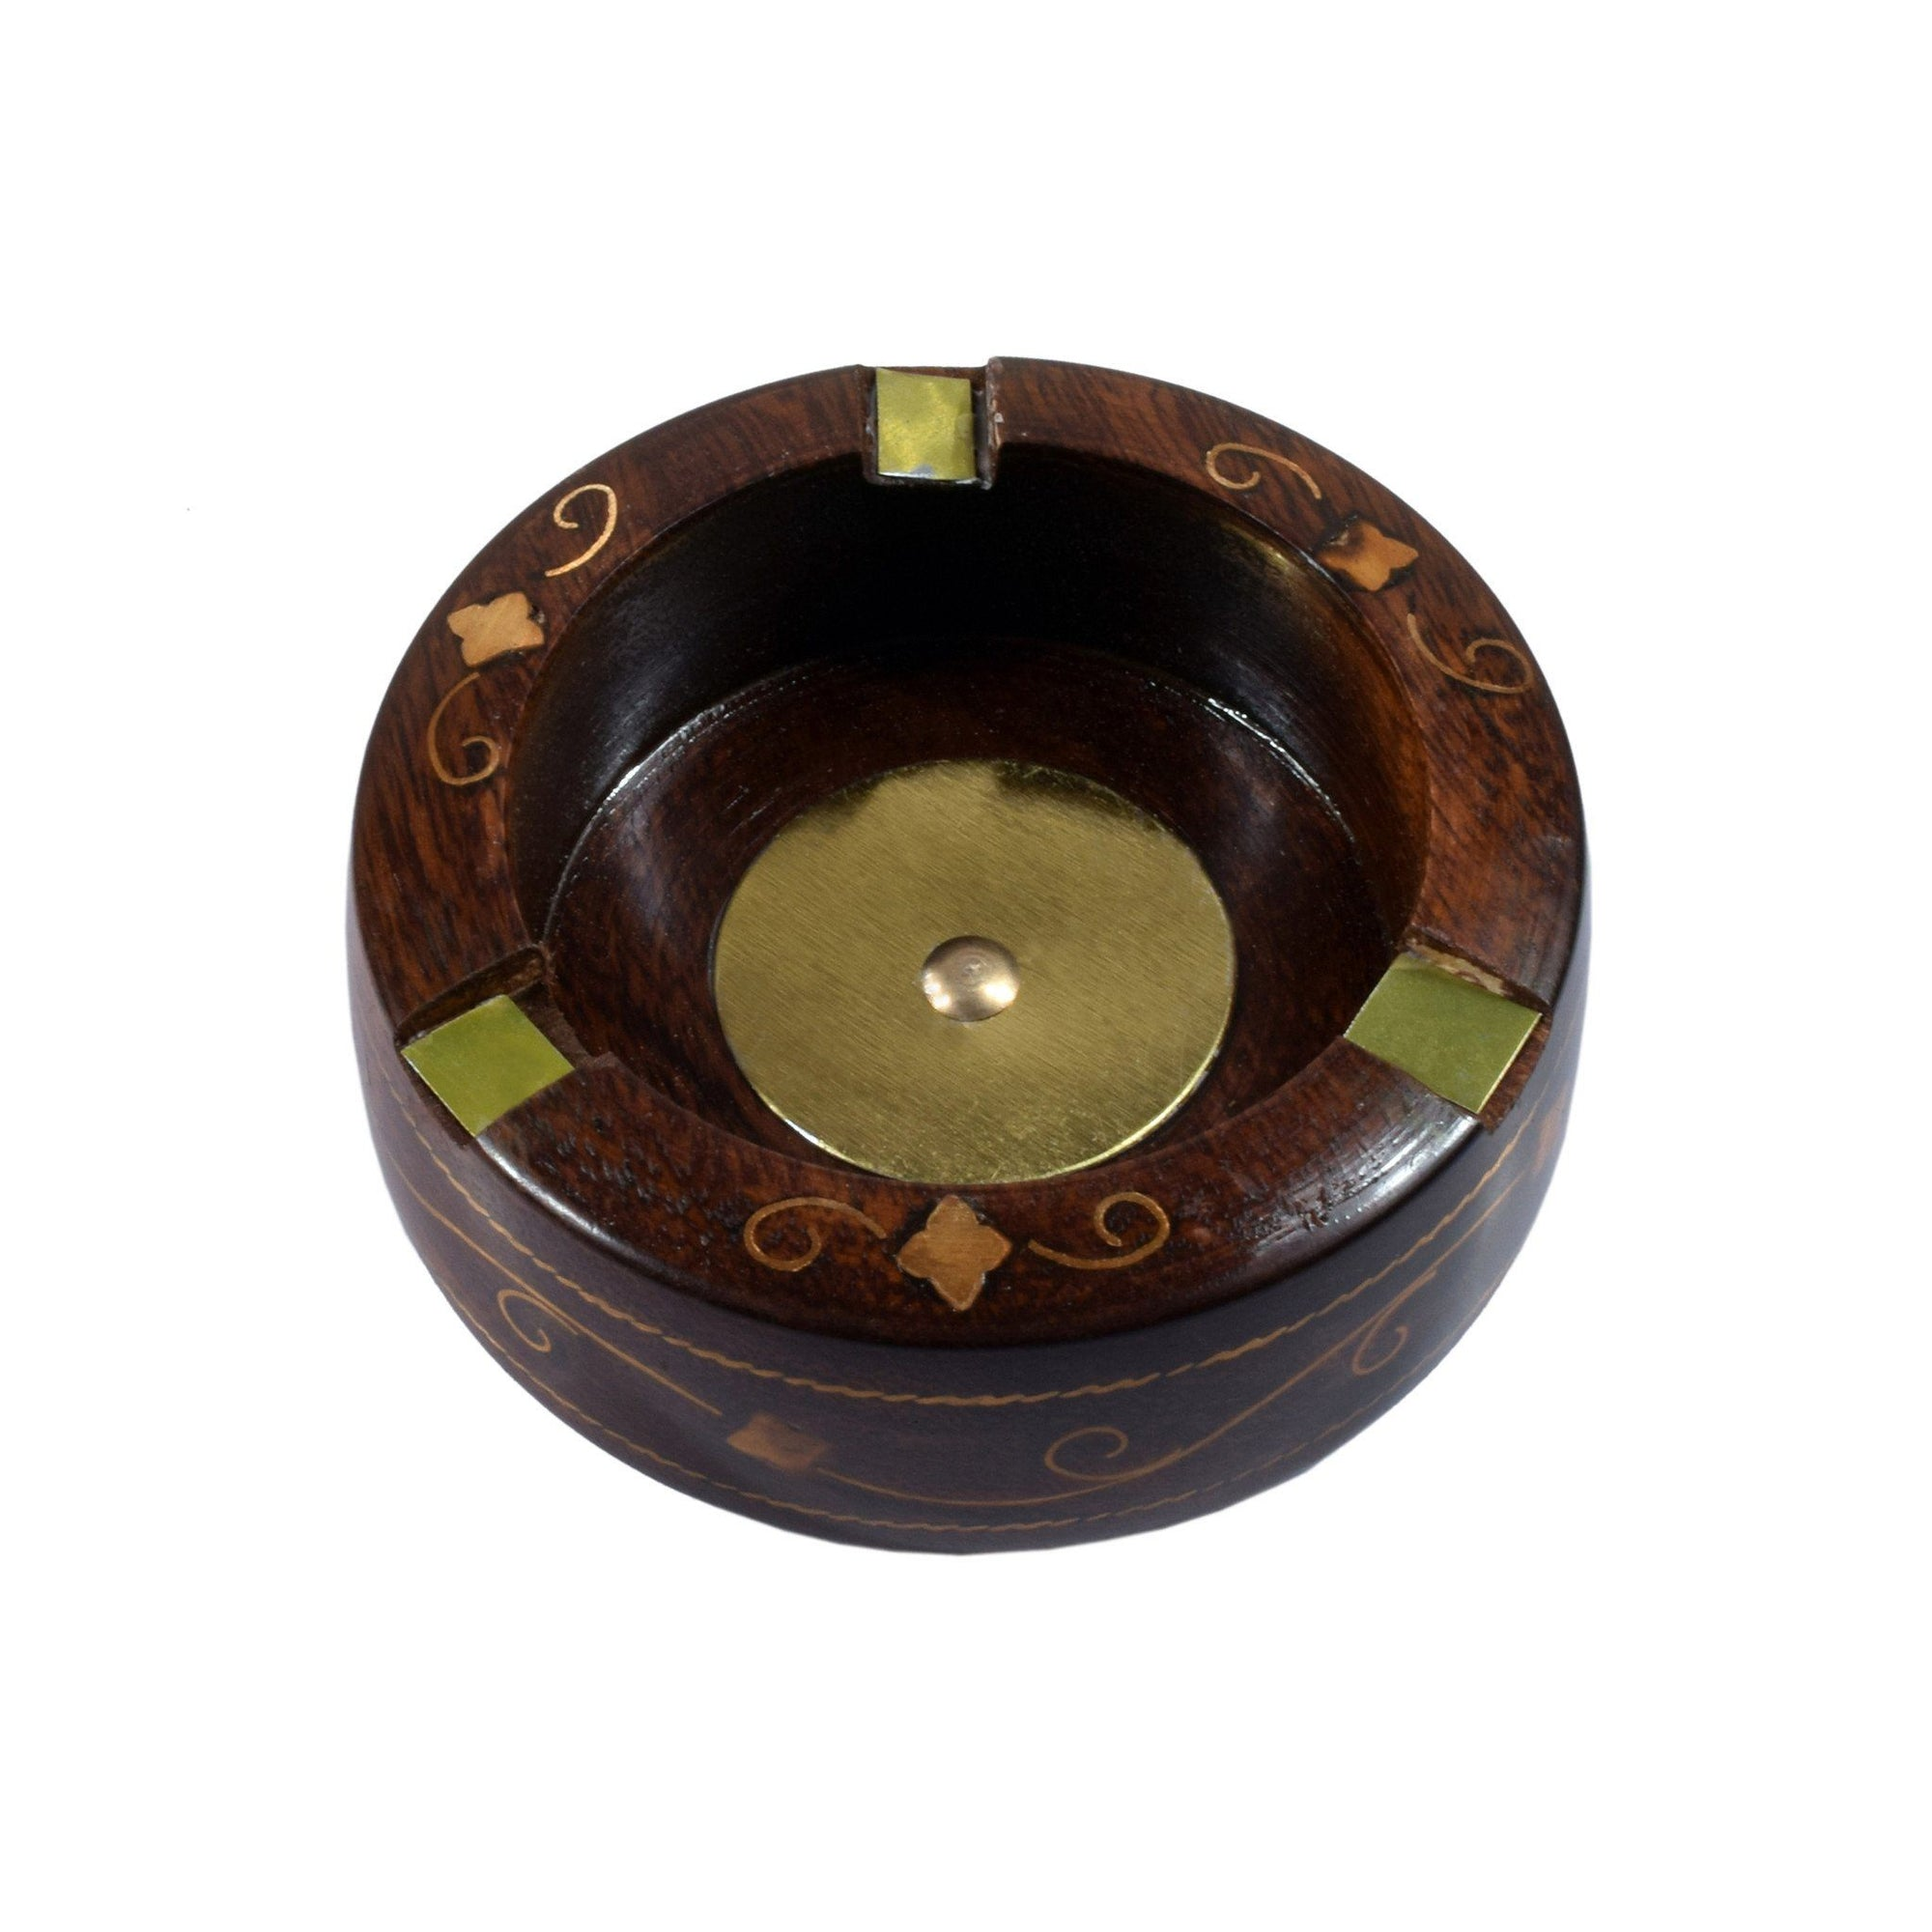 Wooden Amboi Classic Ashtray General Accessories SAK